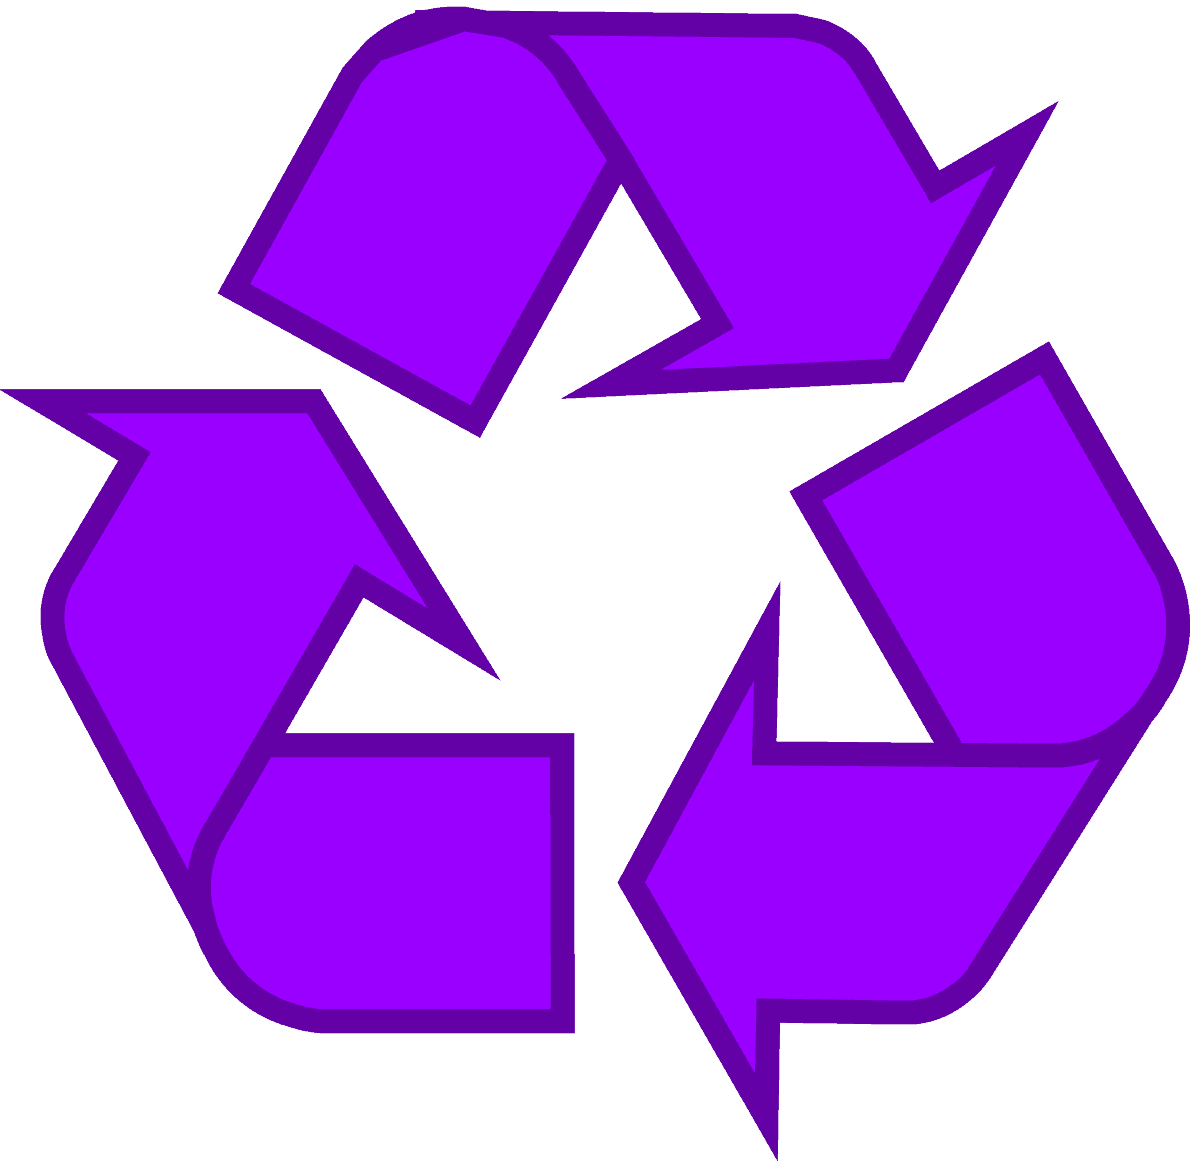 recycling-symbol-icon-outline-solid-purple